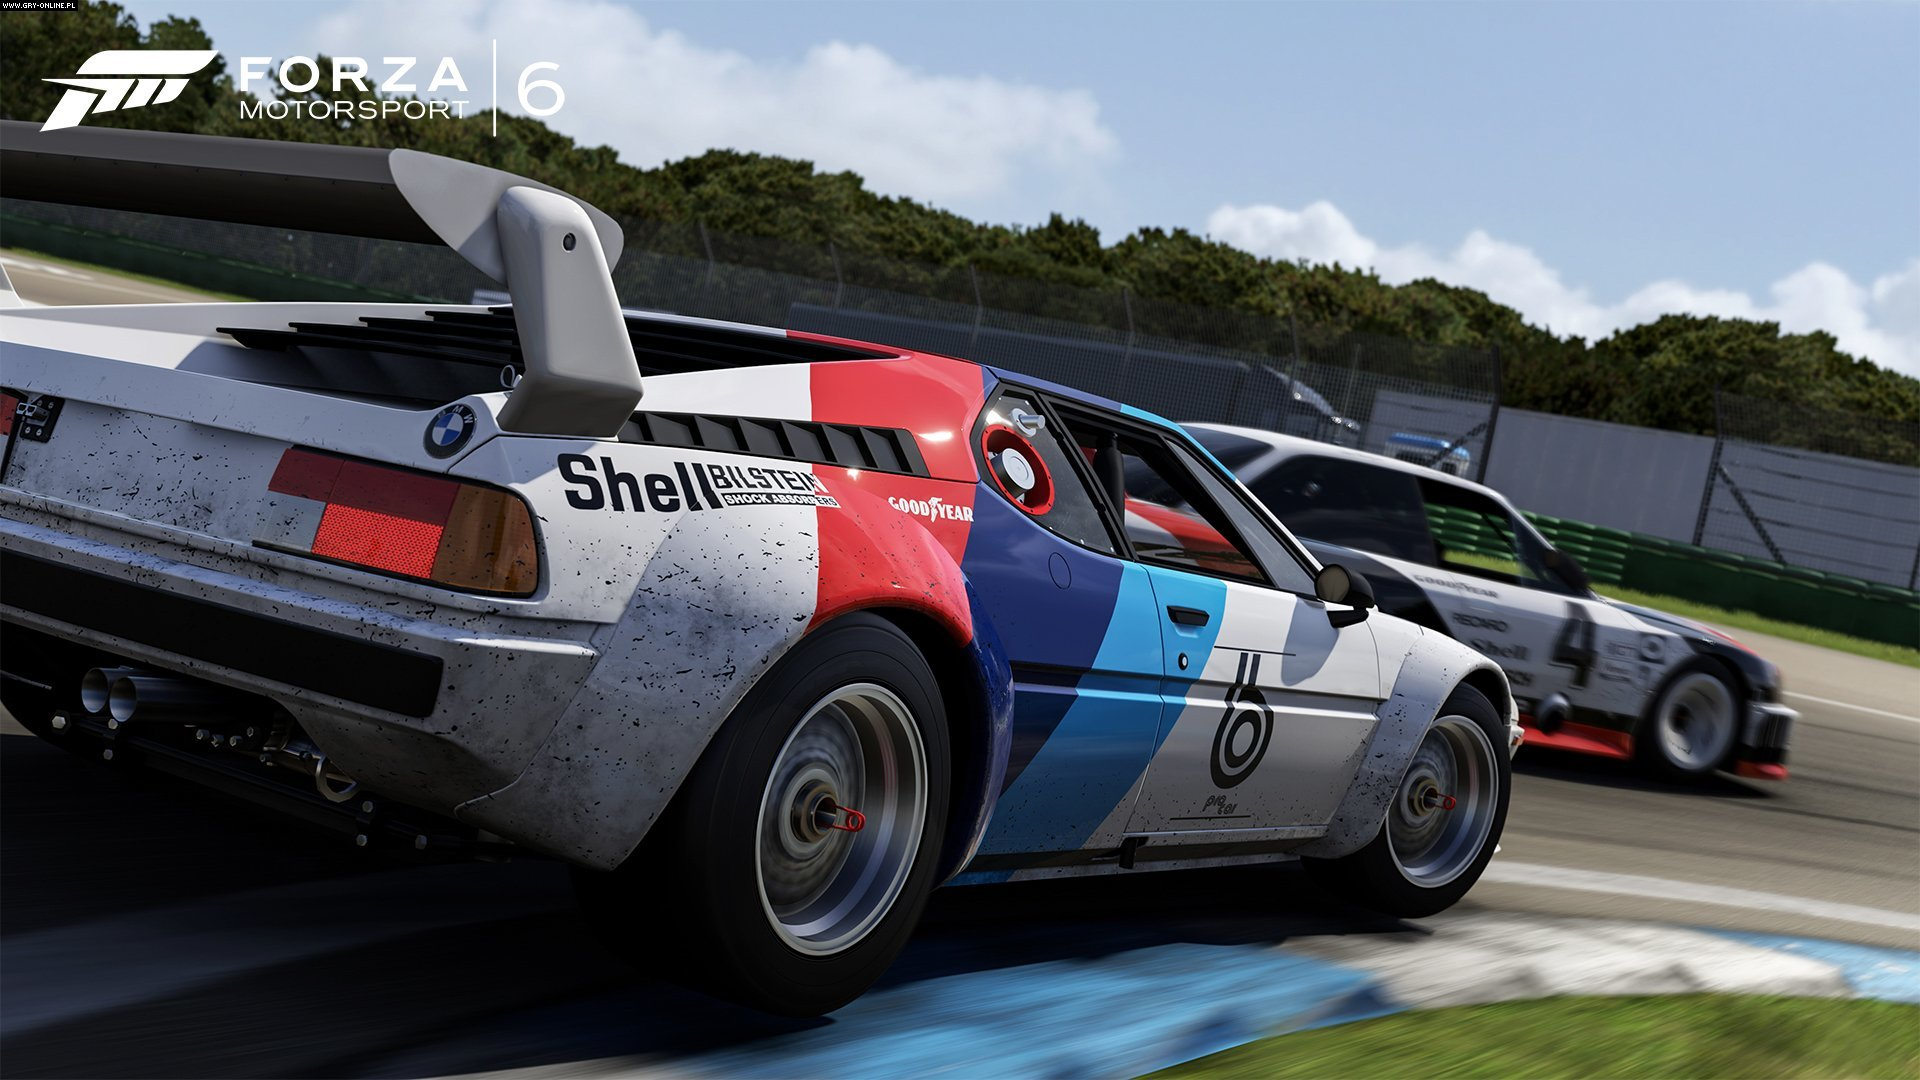 Download 1080p Forza Motorsport 6 Computer Wallpaper ID131910 For Free